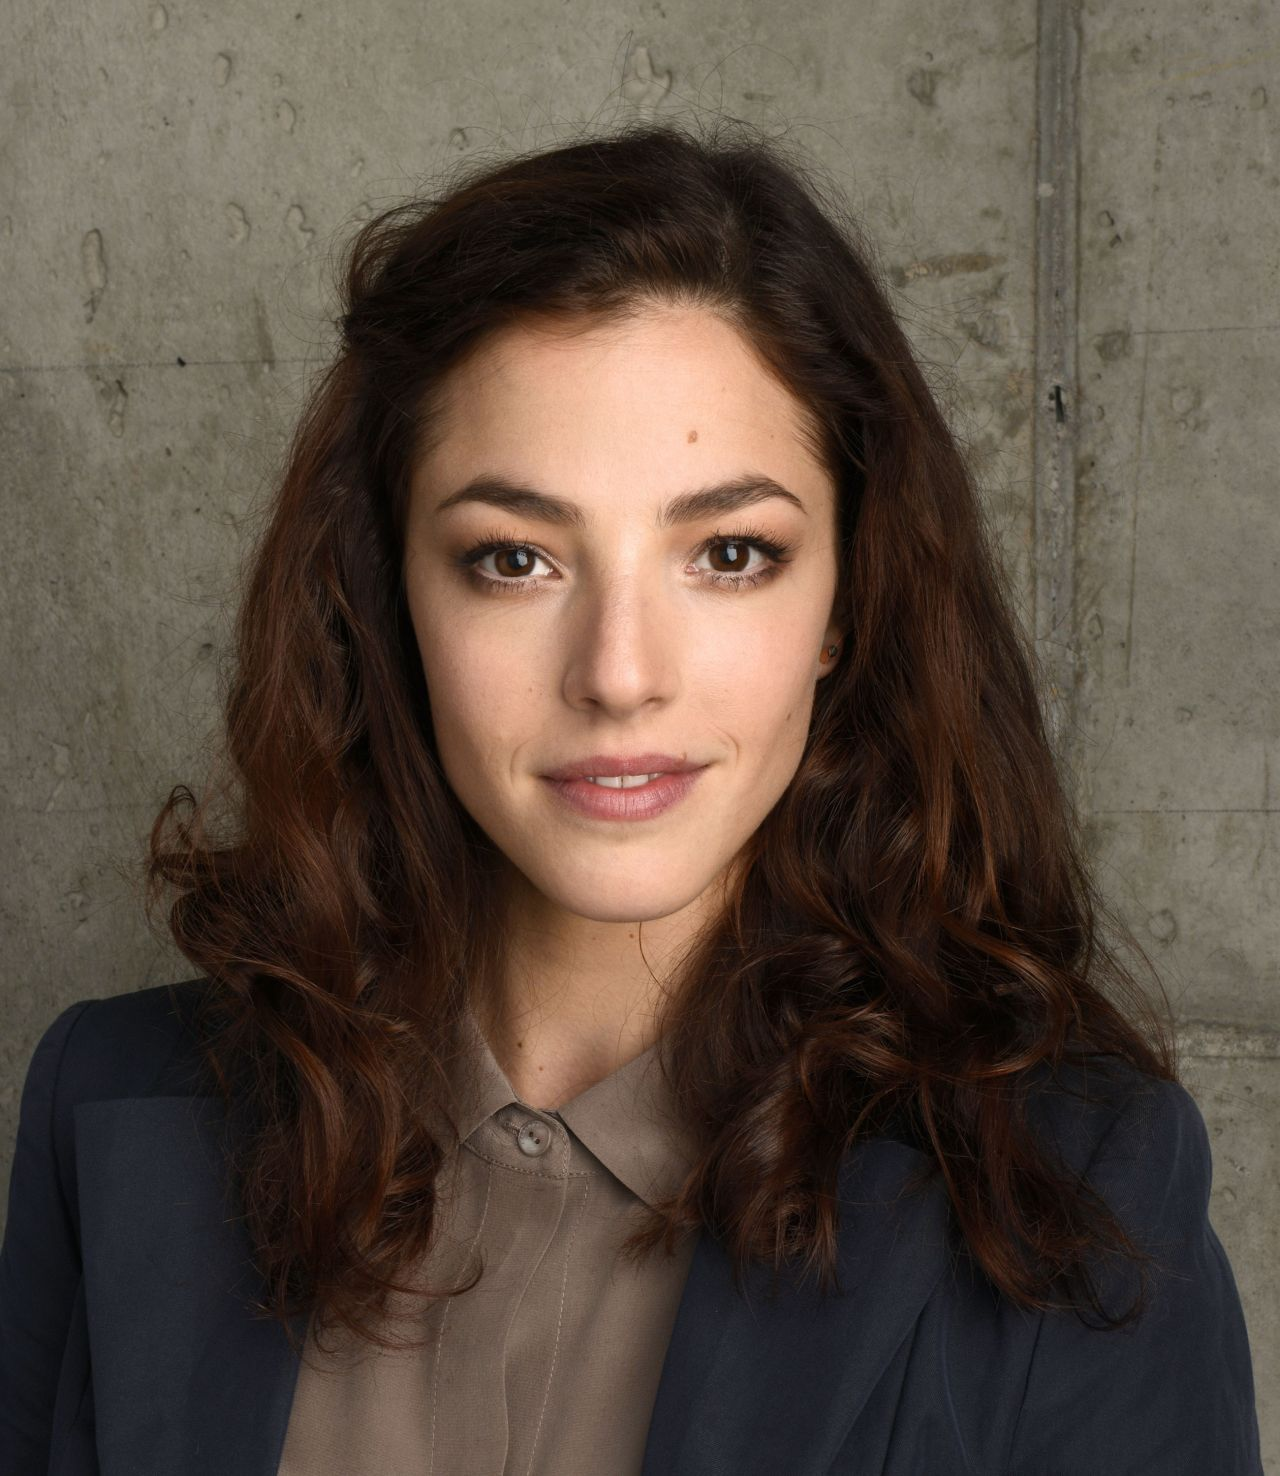 Olivia Thirlby Portraits for '5 to 7′ at the 2014 Tribeca Film Festival in New York City